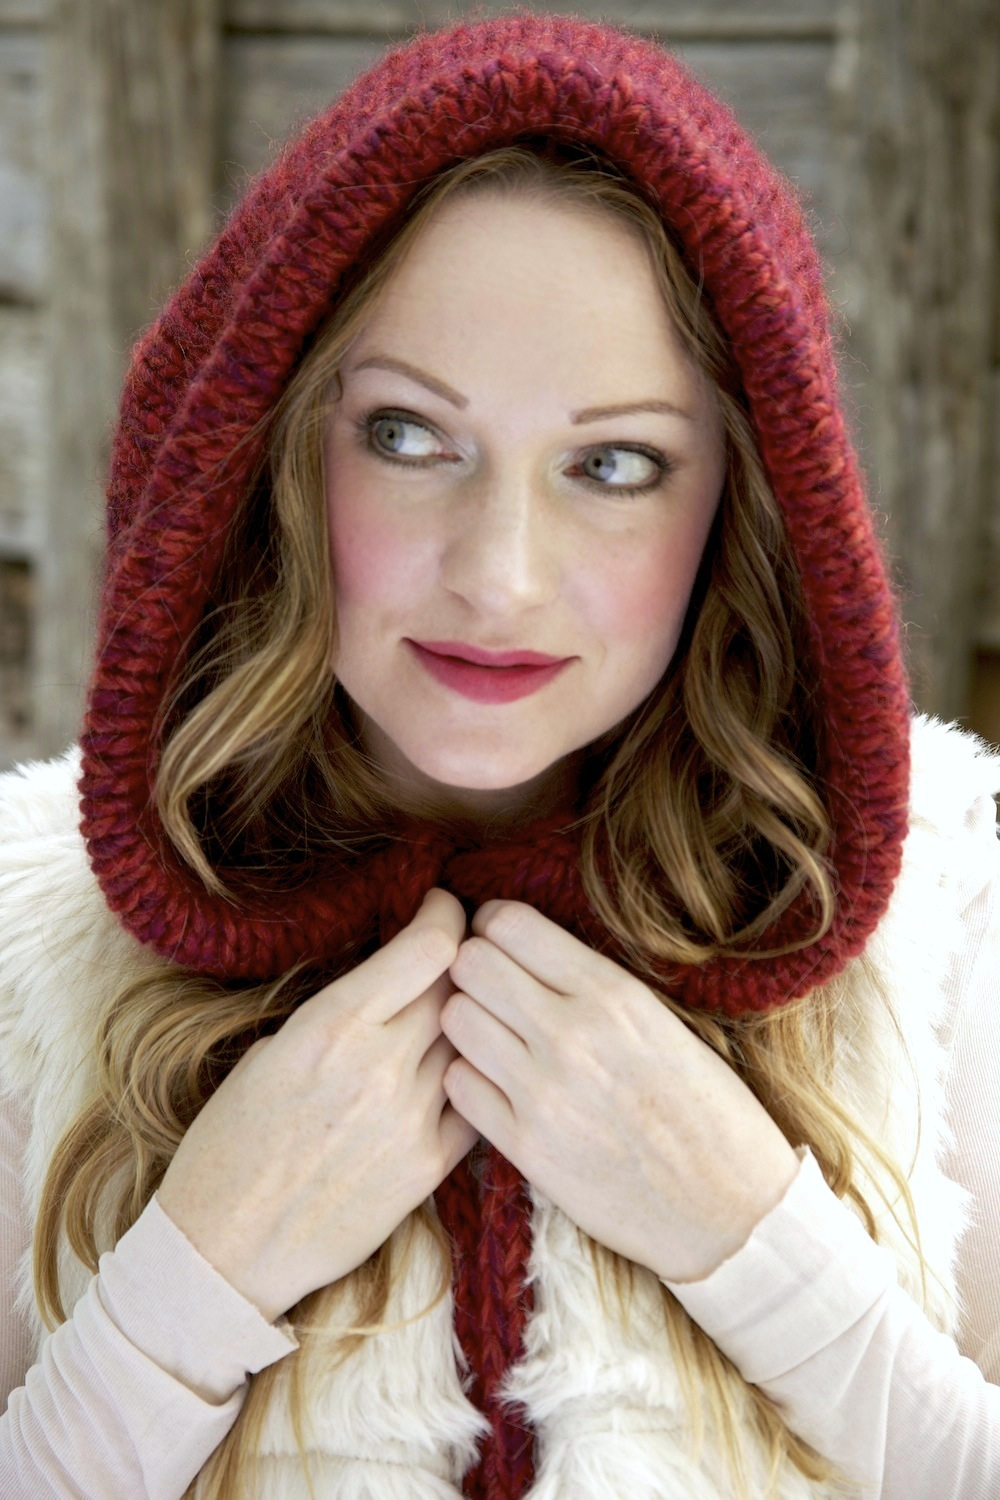 Knitted Cowl Hood Pattern Gallery - handicraft ideas home decorating